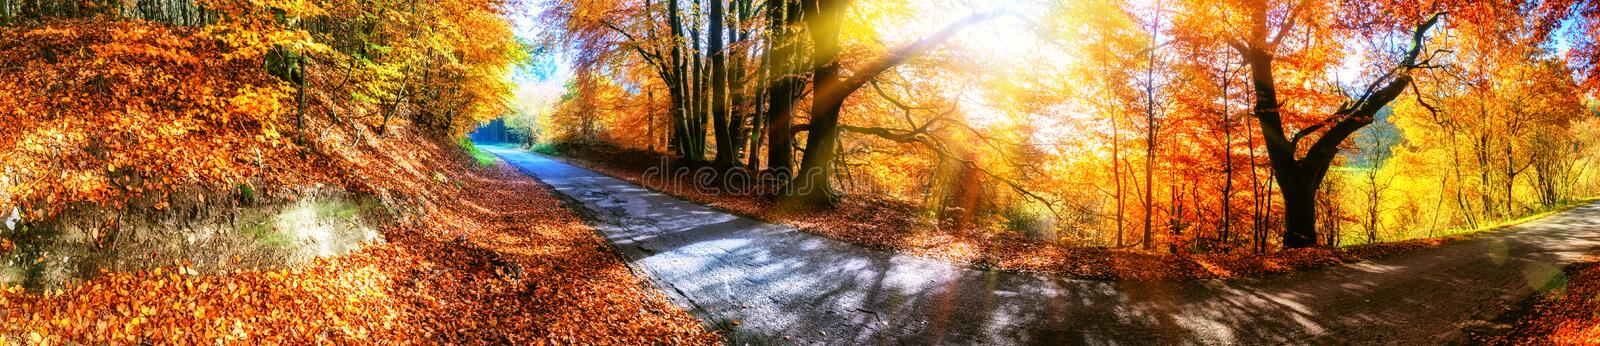 Panoramic autumn landscape with country road in orange tone royalty free stock image